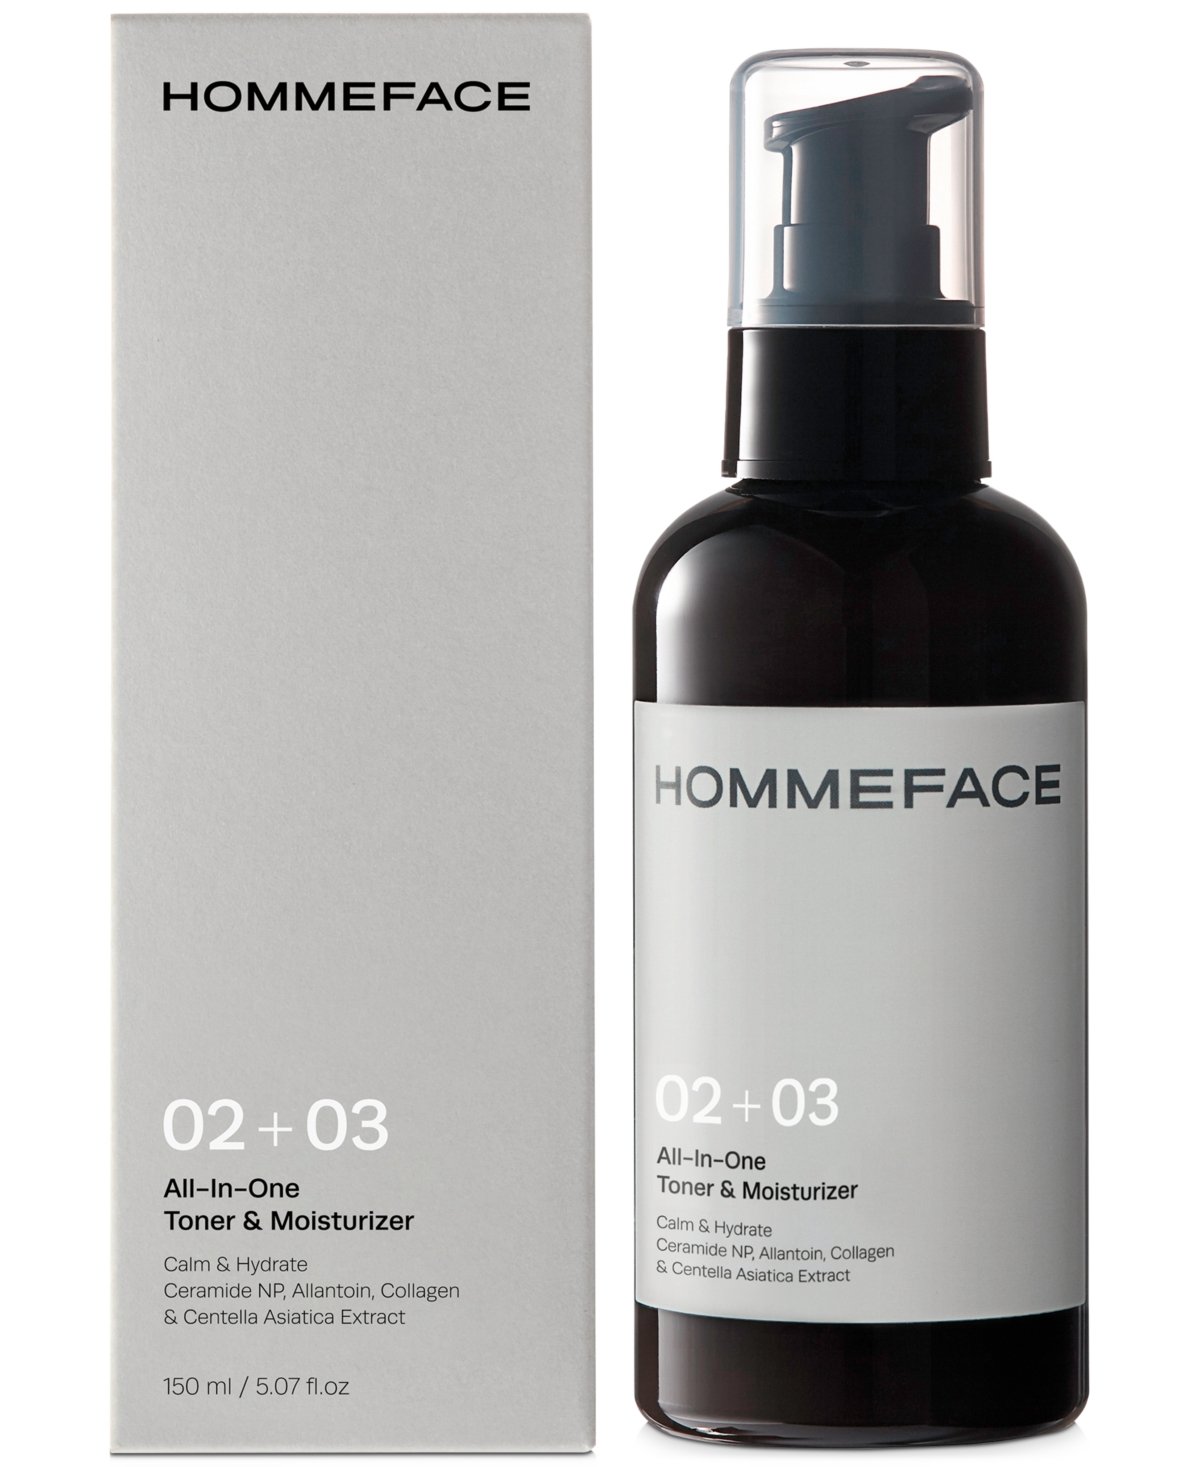 All-In-One Toner and Moisturizer for Men